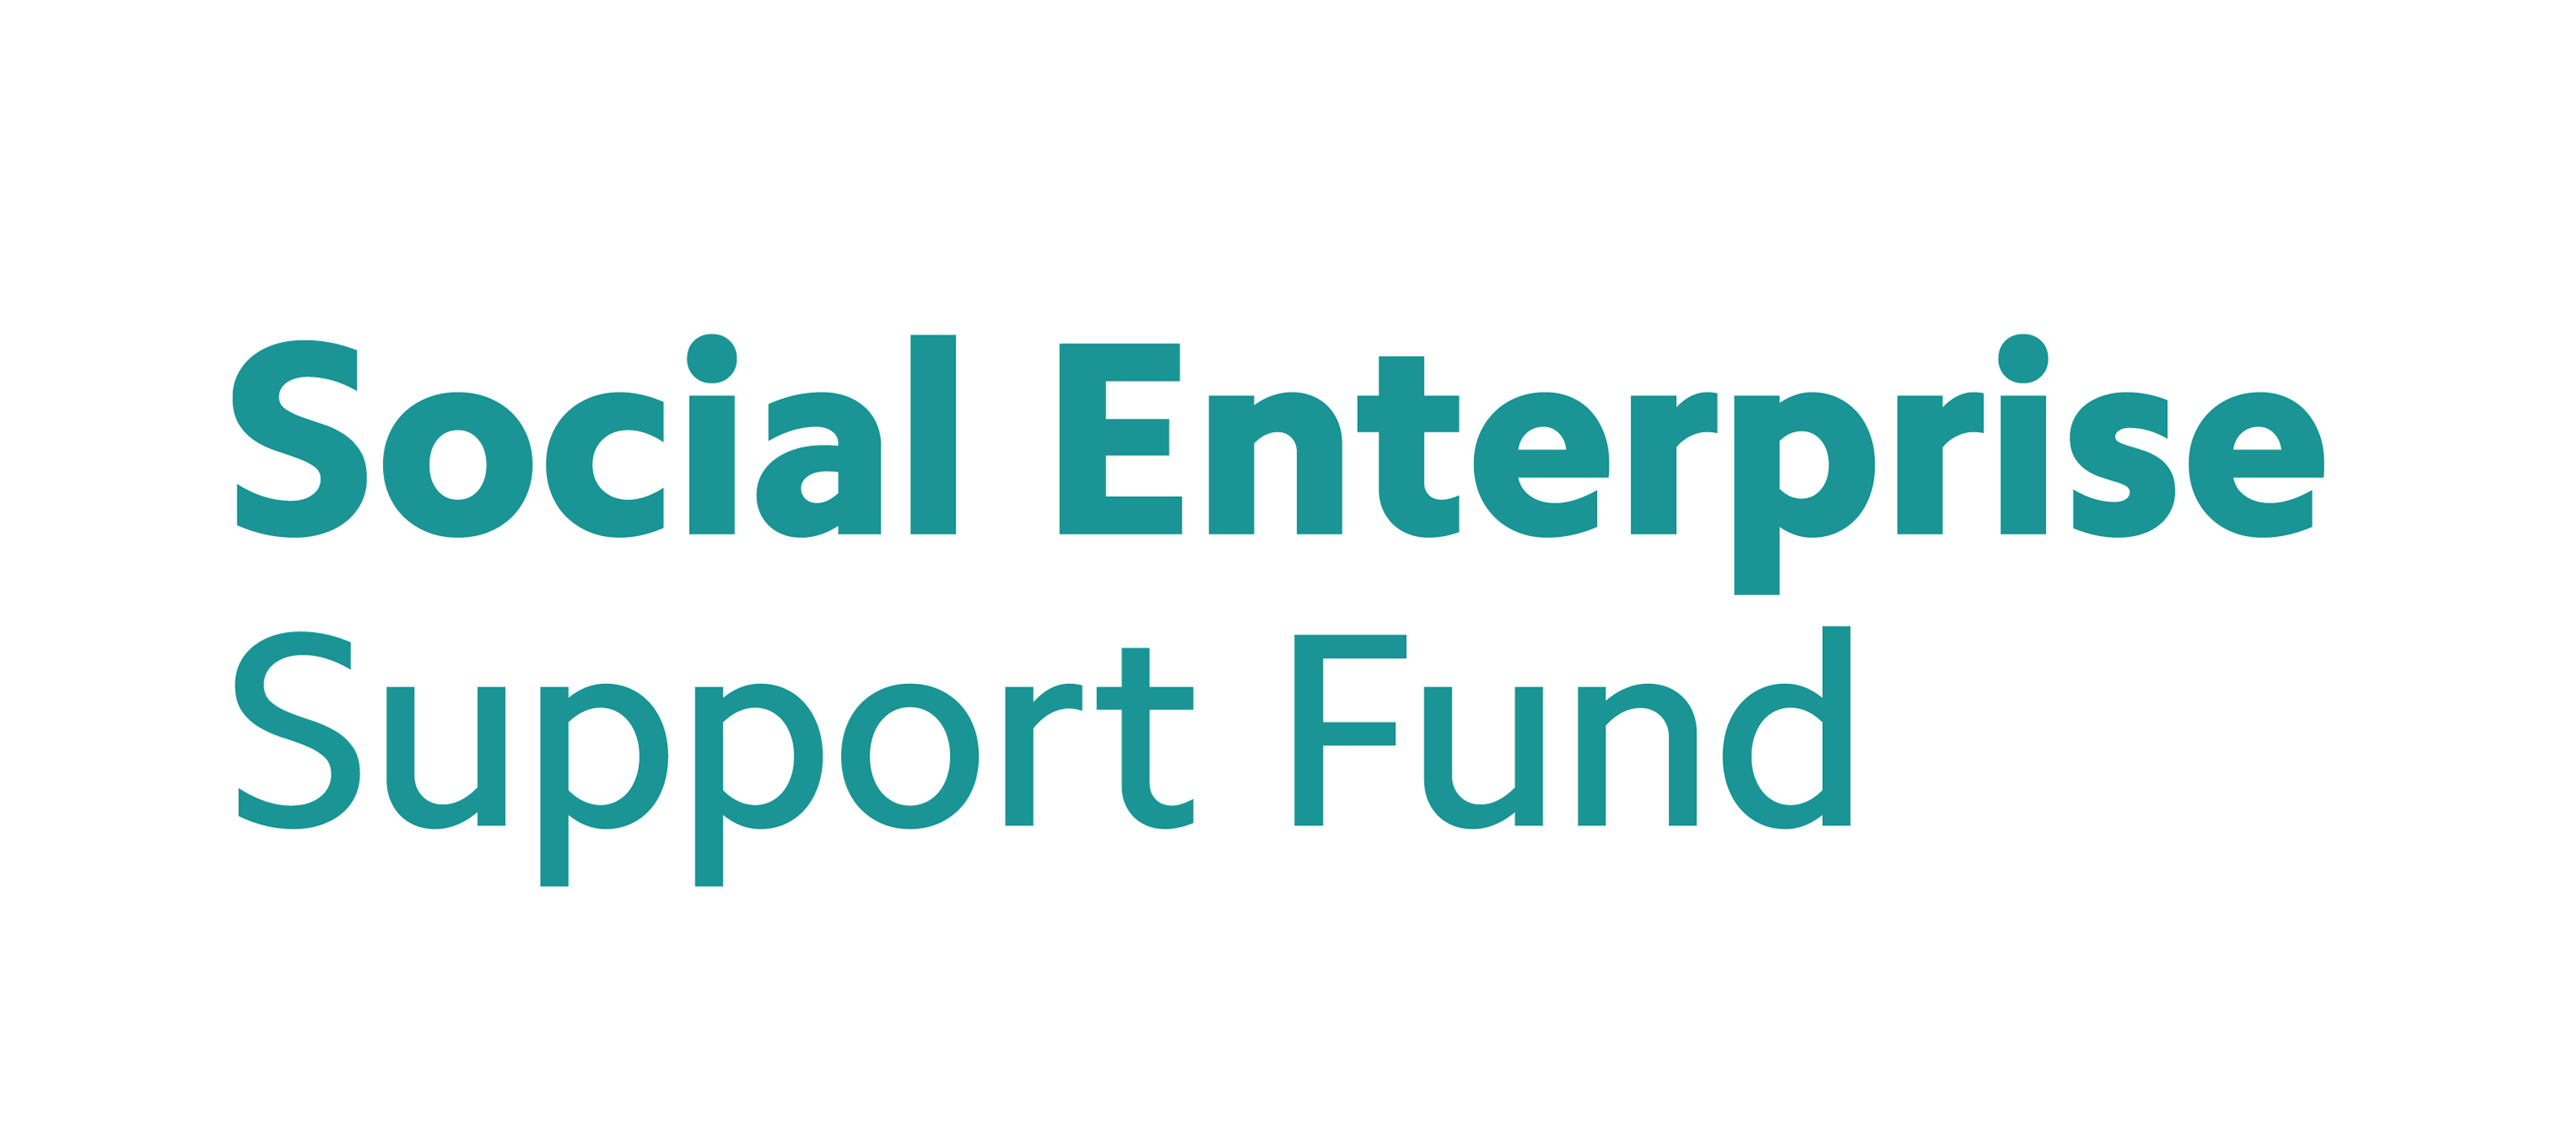 Supported by The Social Enterprise Support Fund